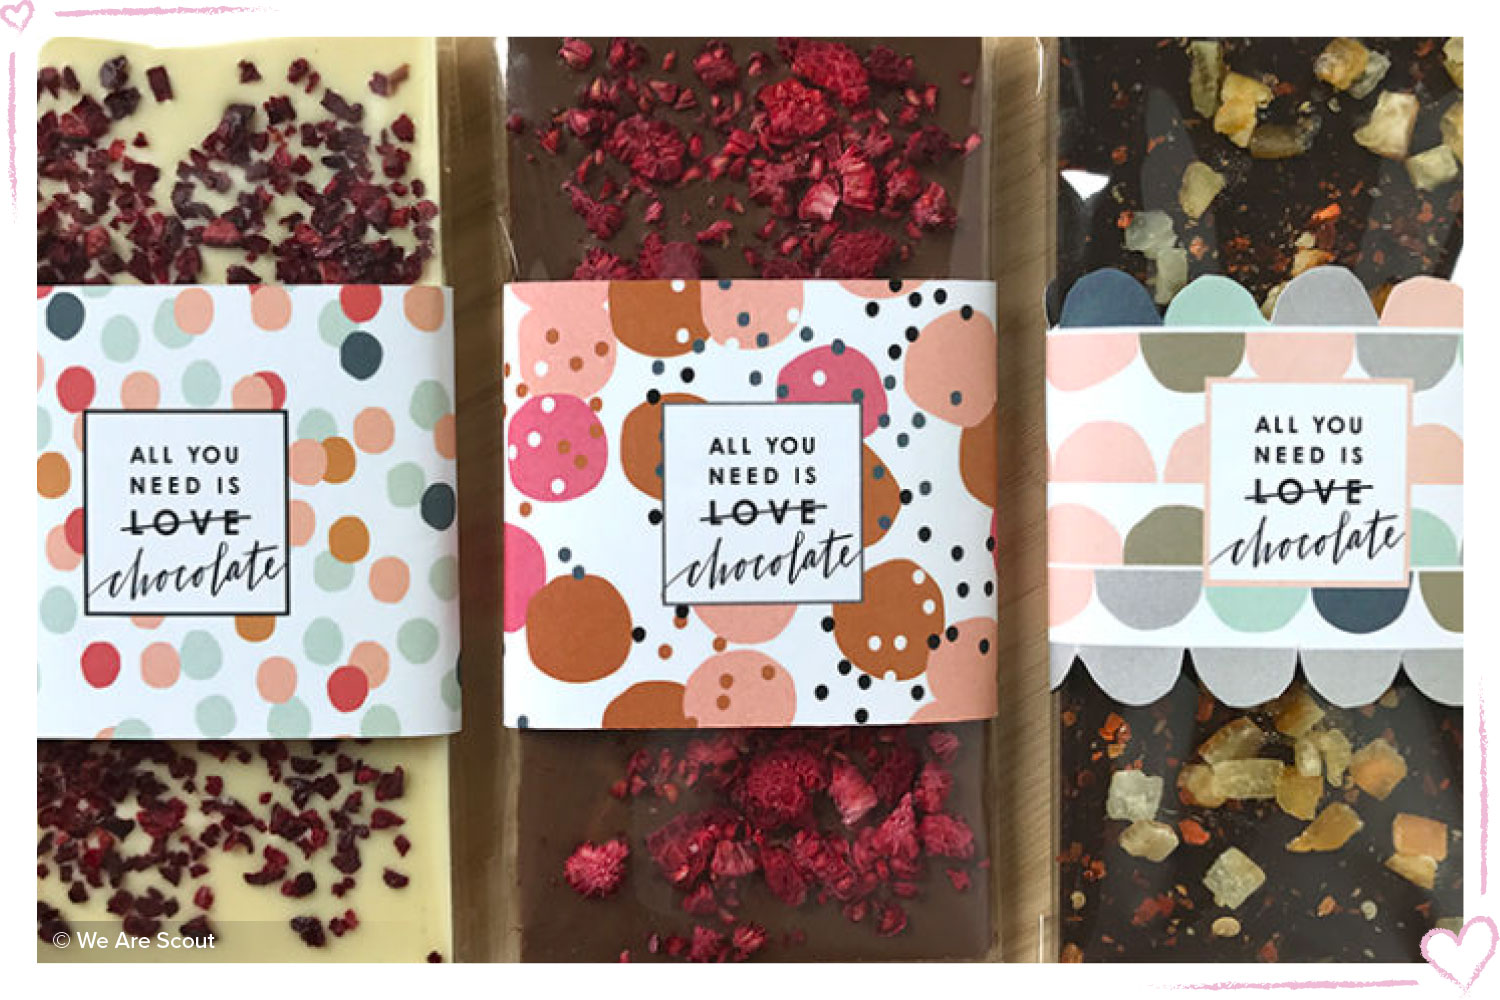 Five Delicious Gifts for your loved one